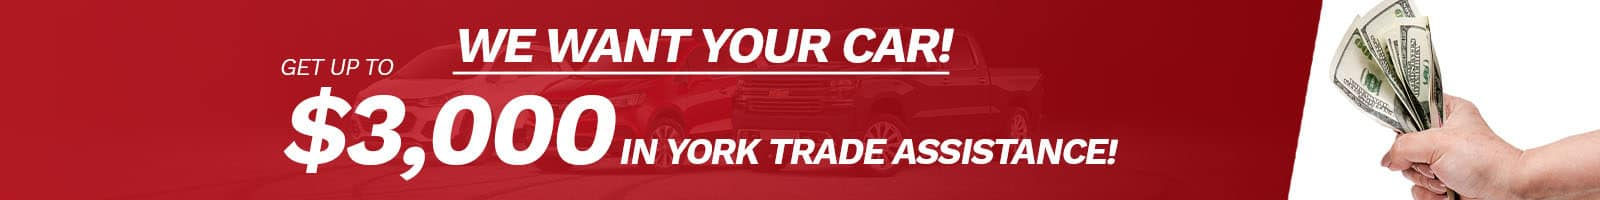 Get up to $3,000 in Trade Assistance at York